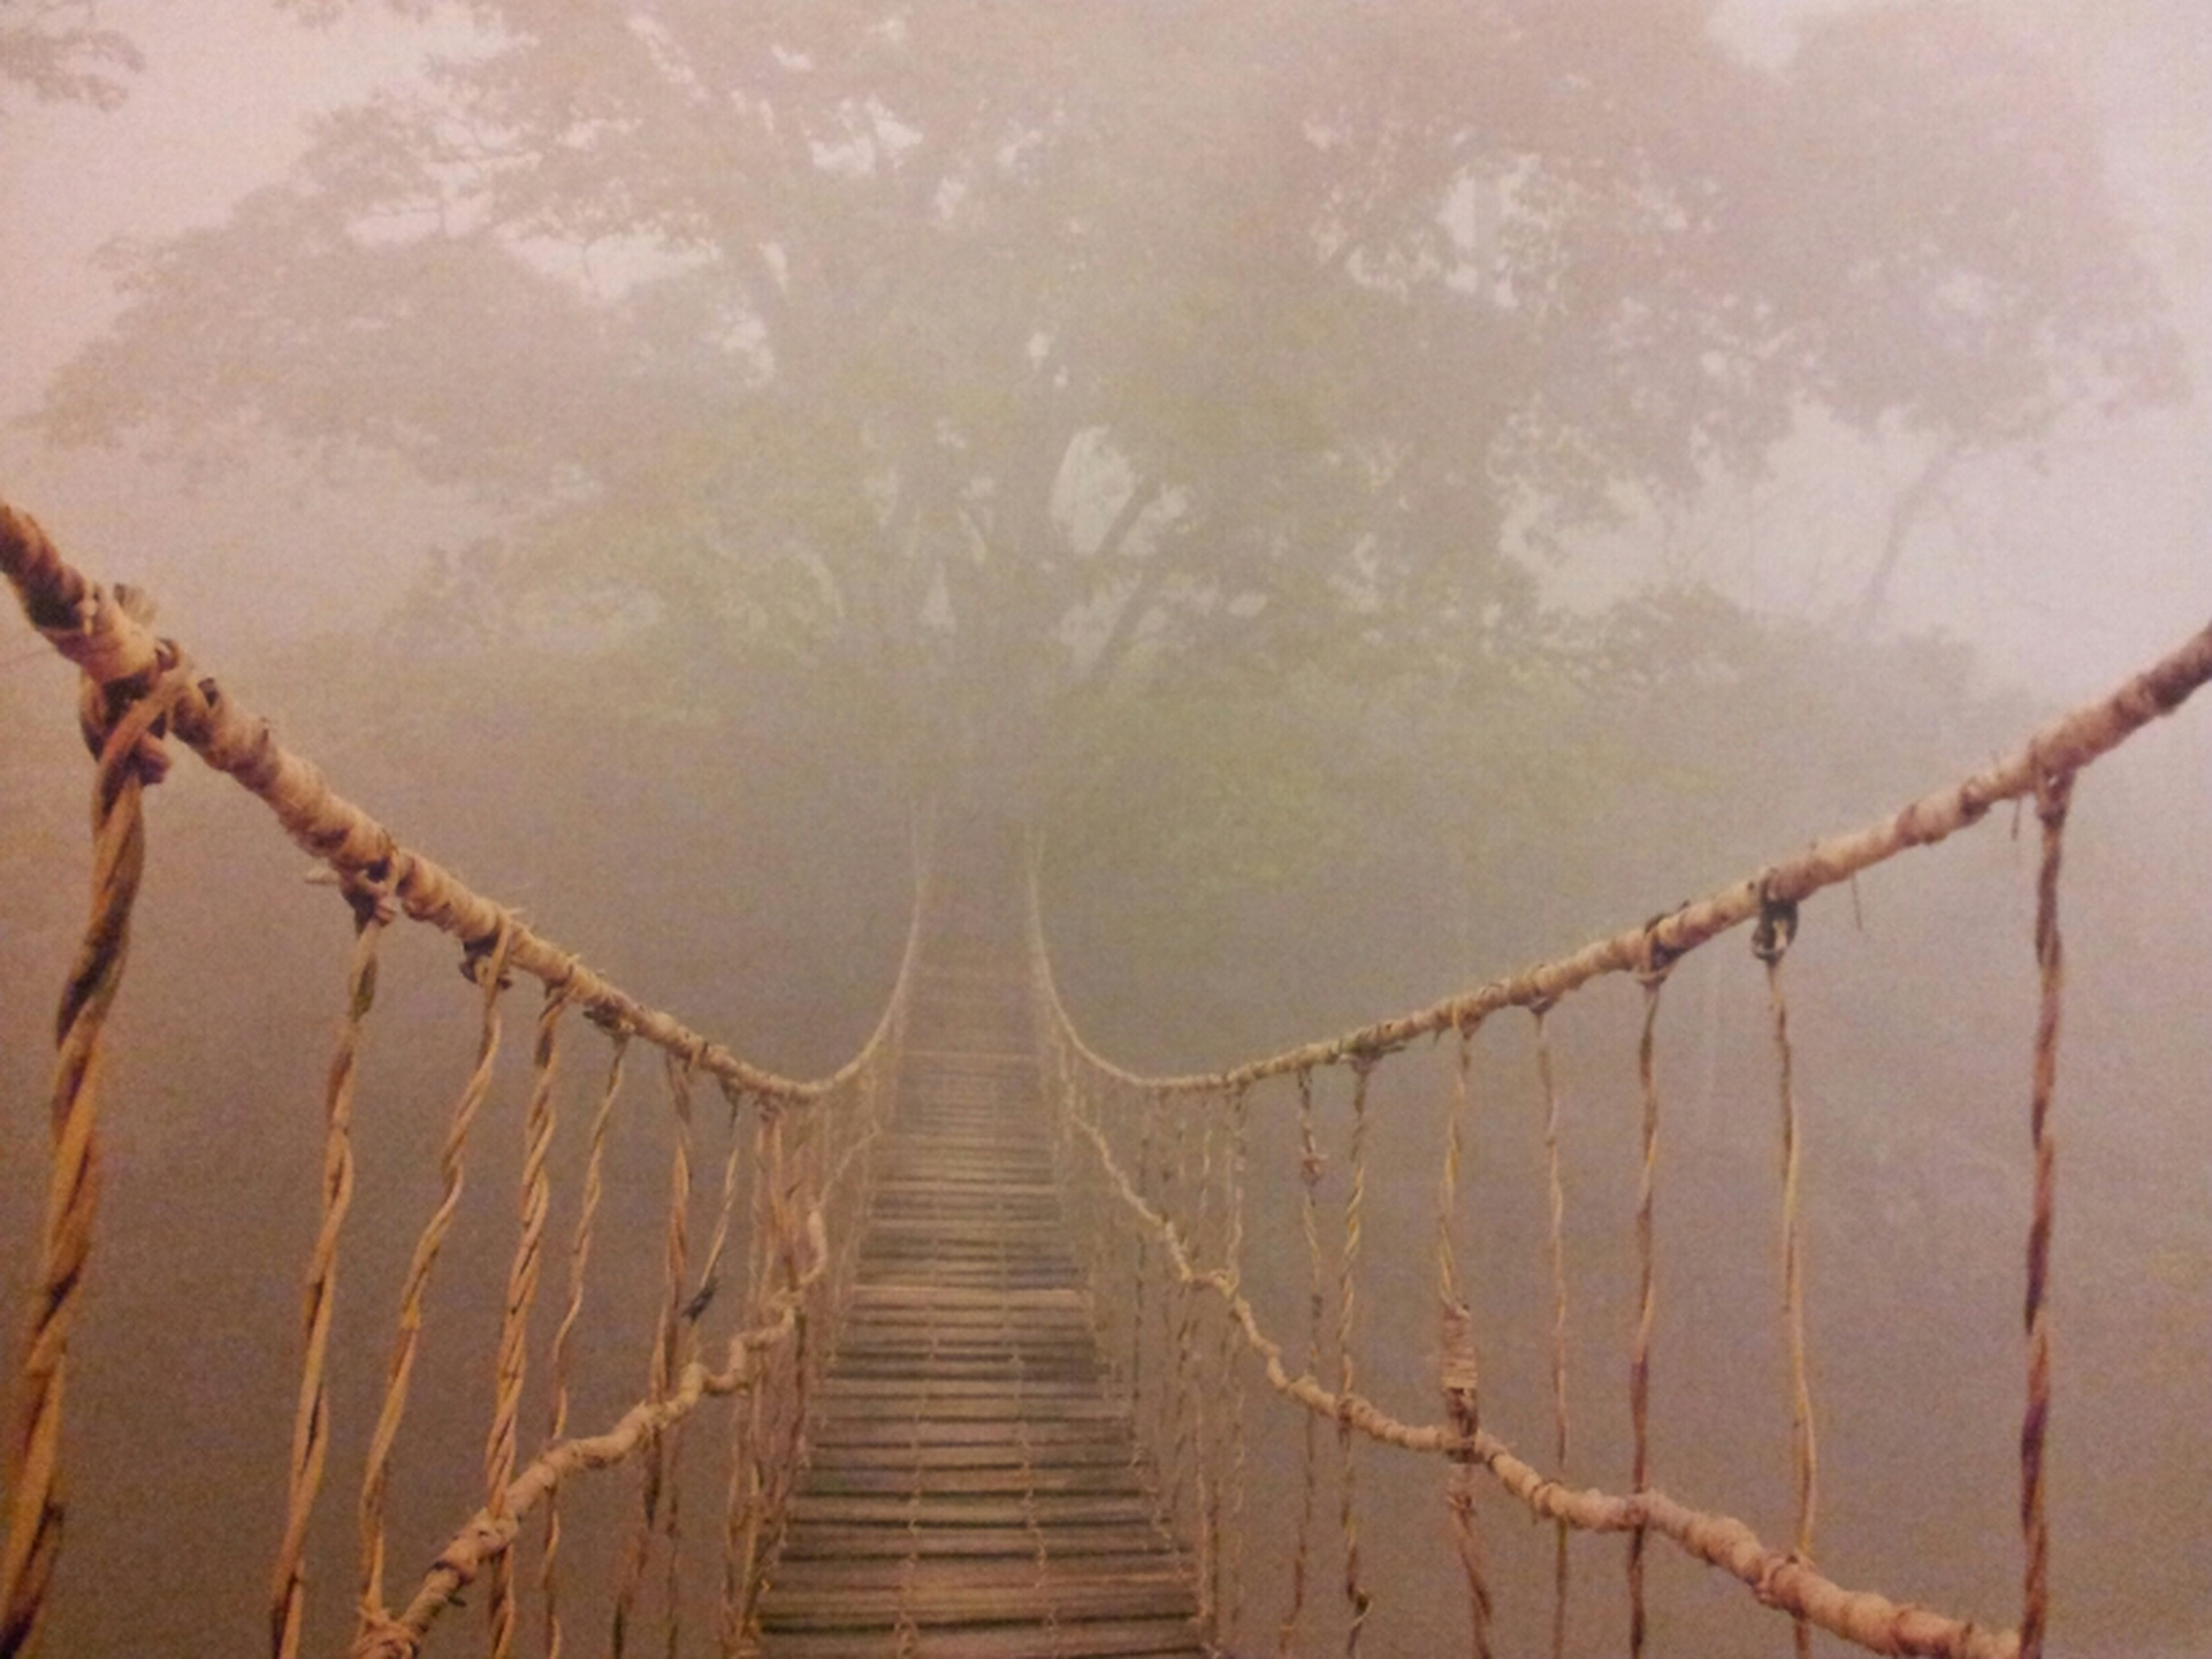 the way forward, wood - material, tree, tranquility, railing, nature, diminishing perspective, branch, sky, tranquil scene, outdoors, forest, beauty in nature, day, weather, footbridge, no people, fog, vanishing point, boardwalk